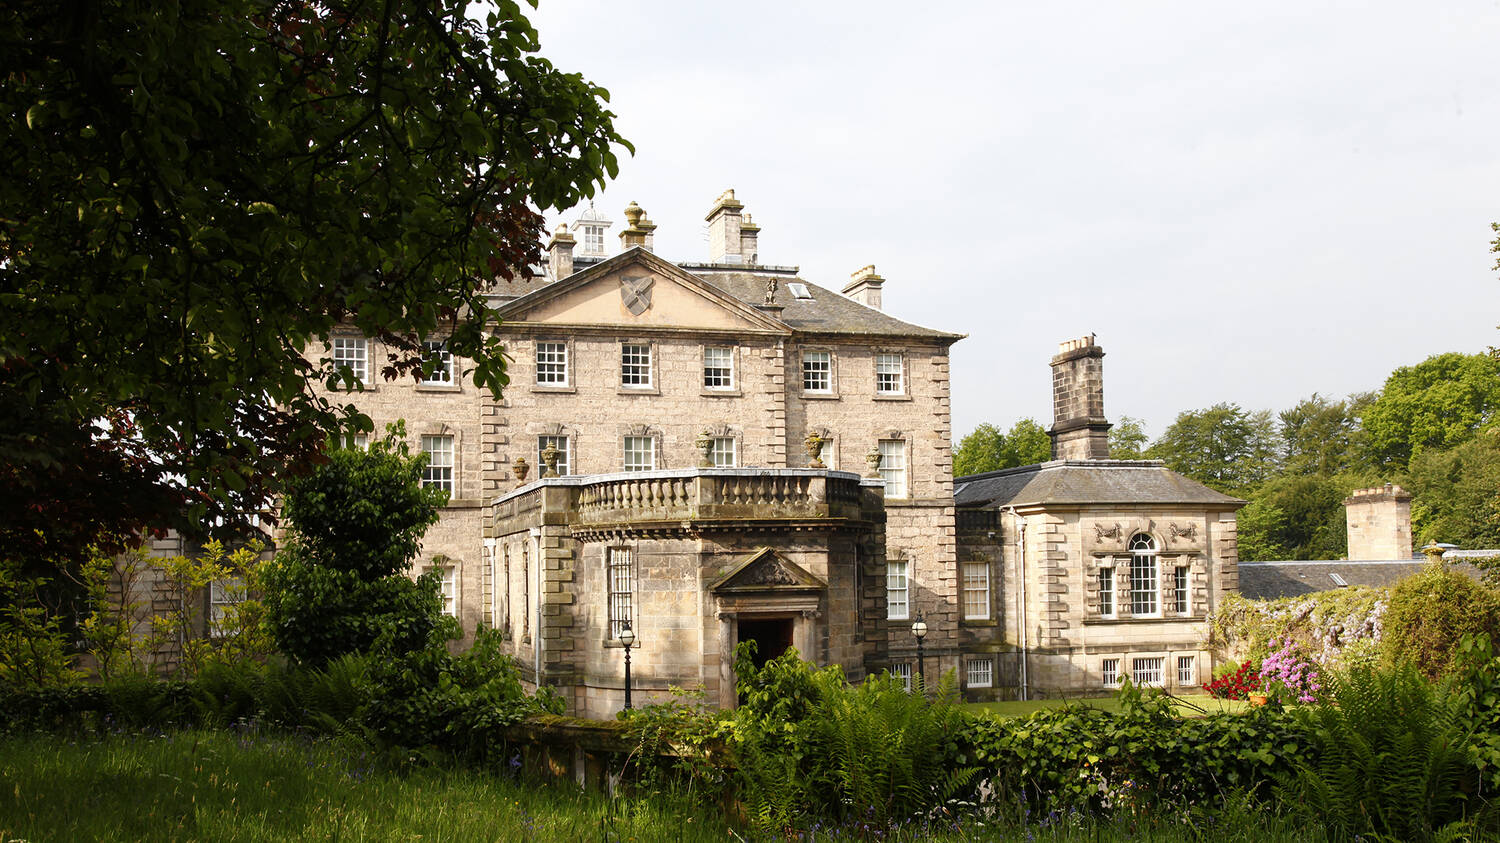 Pollok House is where discussions about the foundation of the Trust took place.